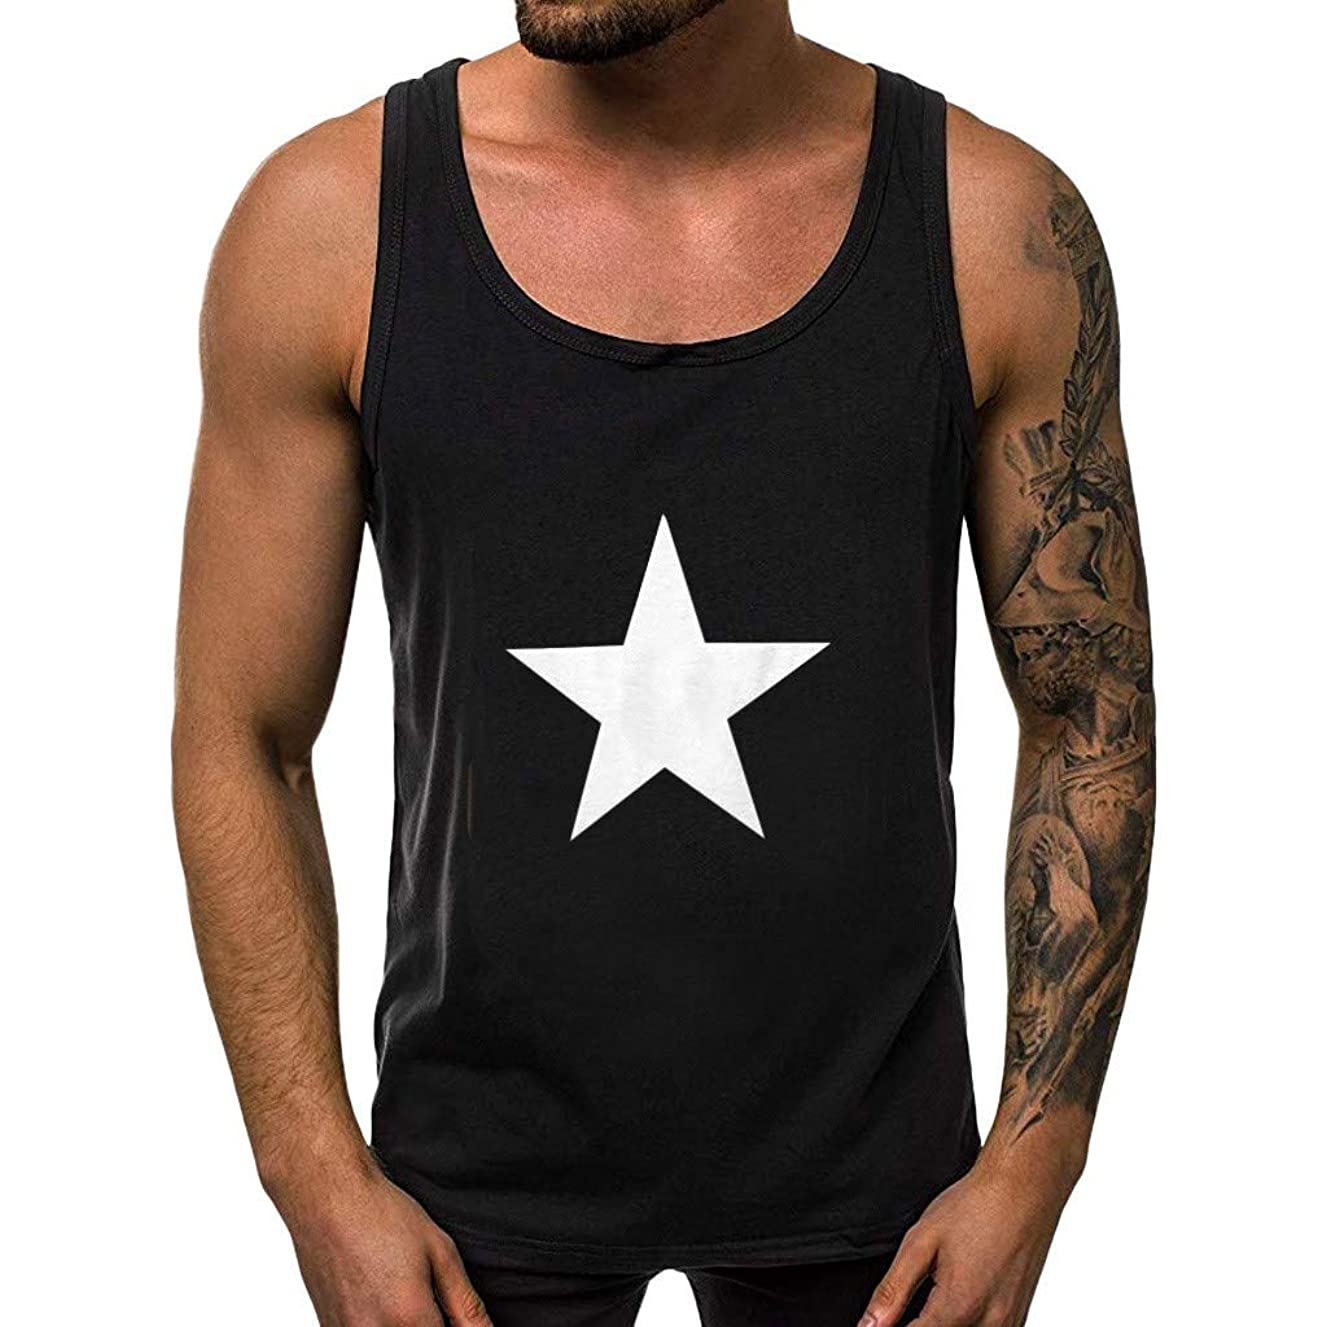 Summer Shirts for Men, SFE Men Fitness Muscle Star Print Sleeveless Bodybuilding Vest Tops Blouses Fashion Casual